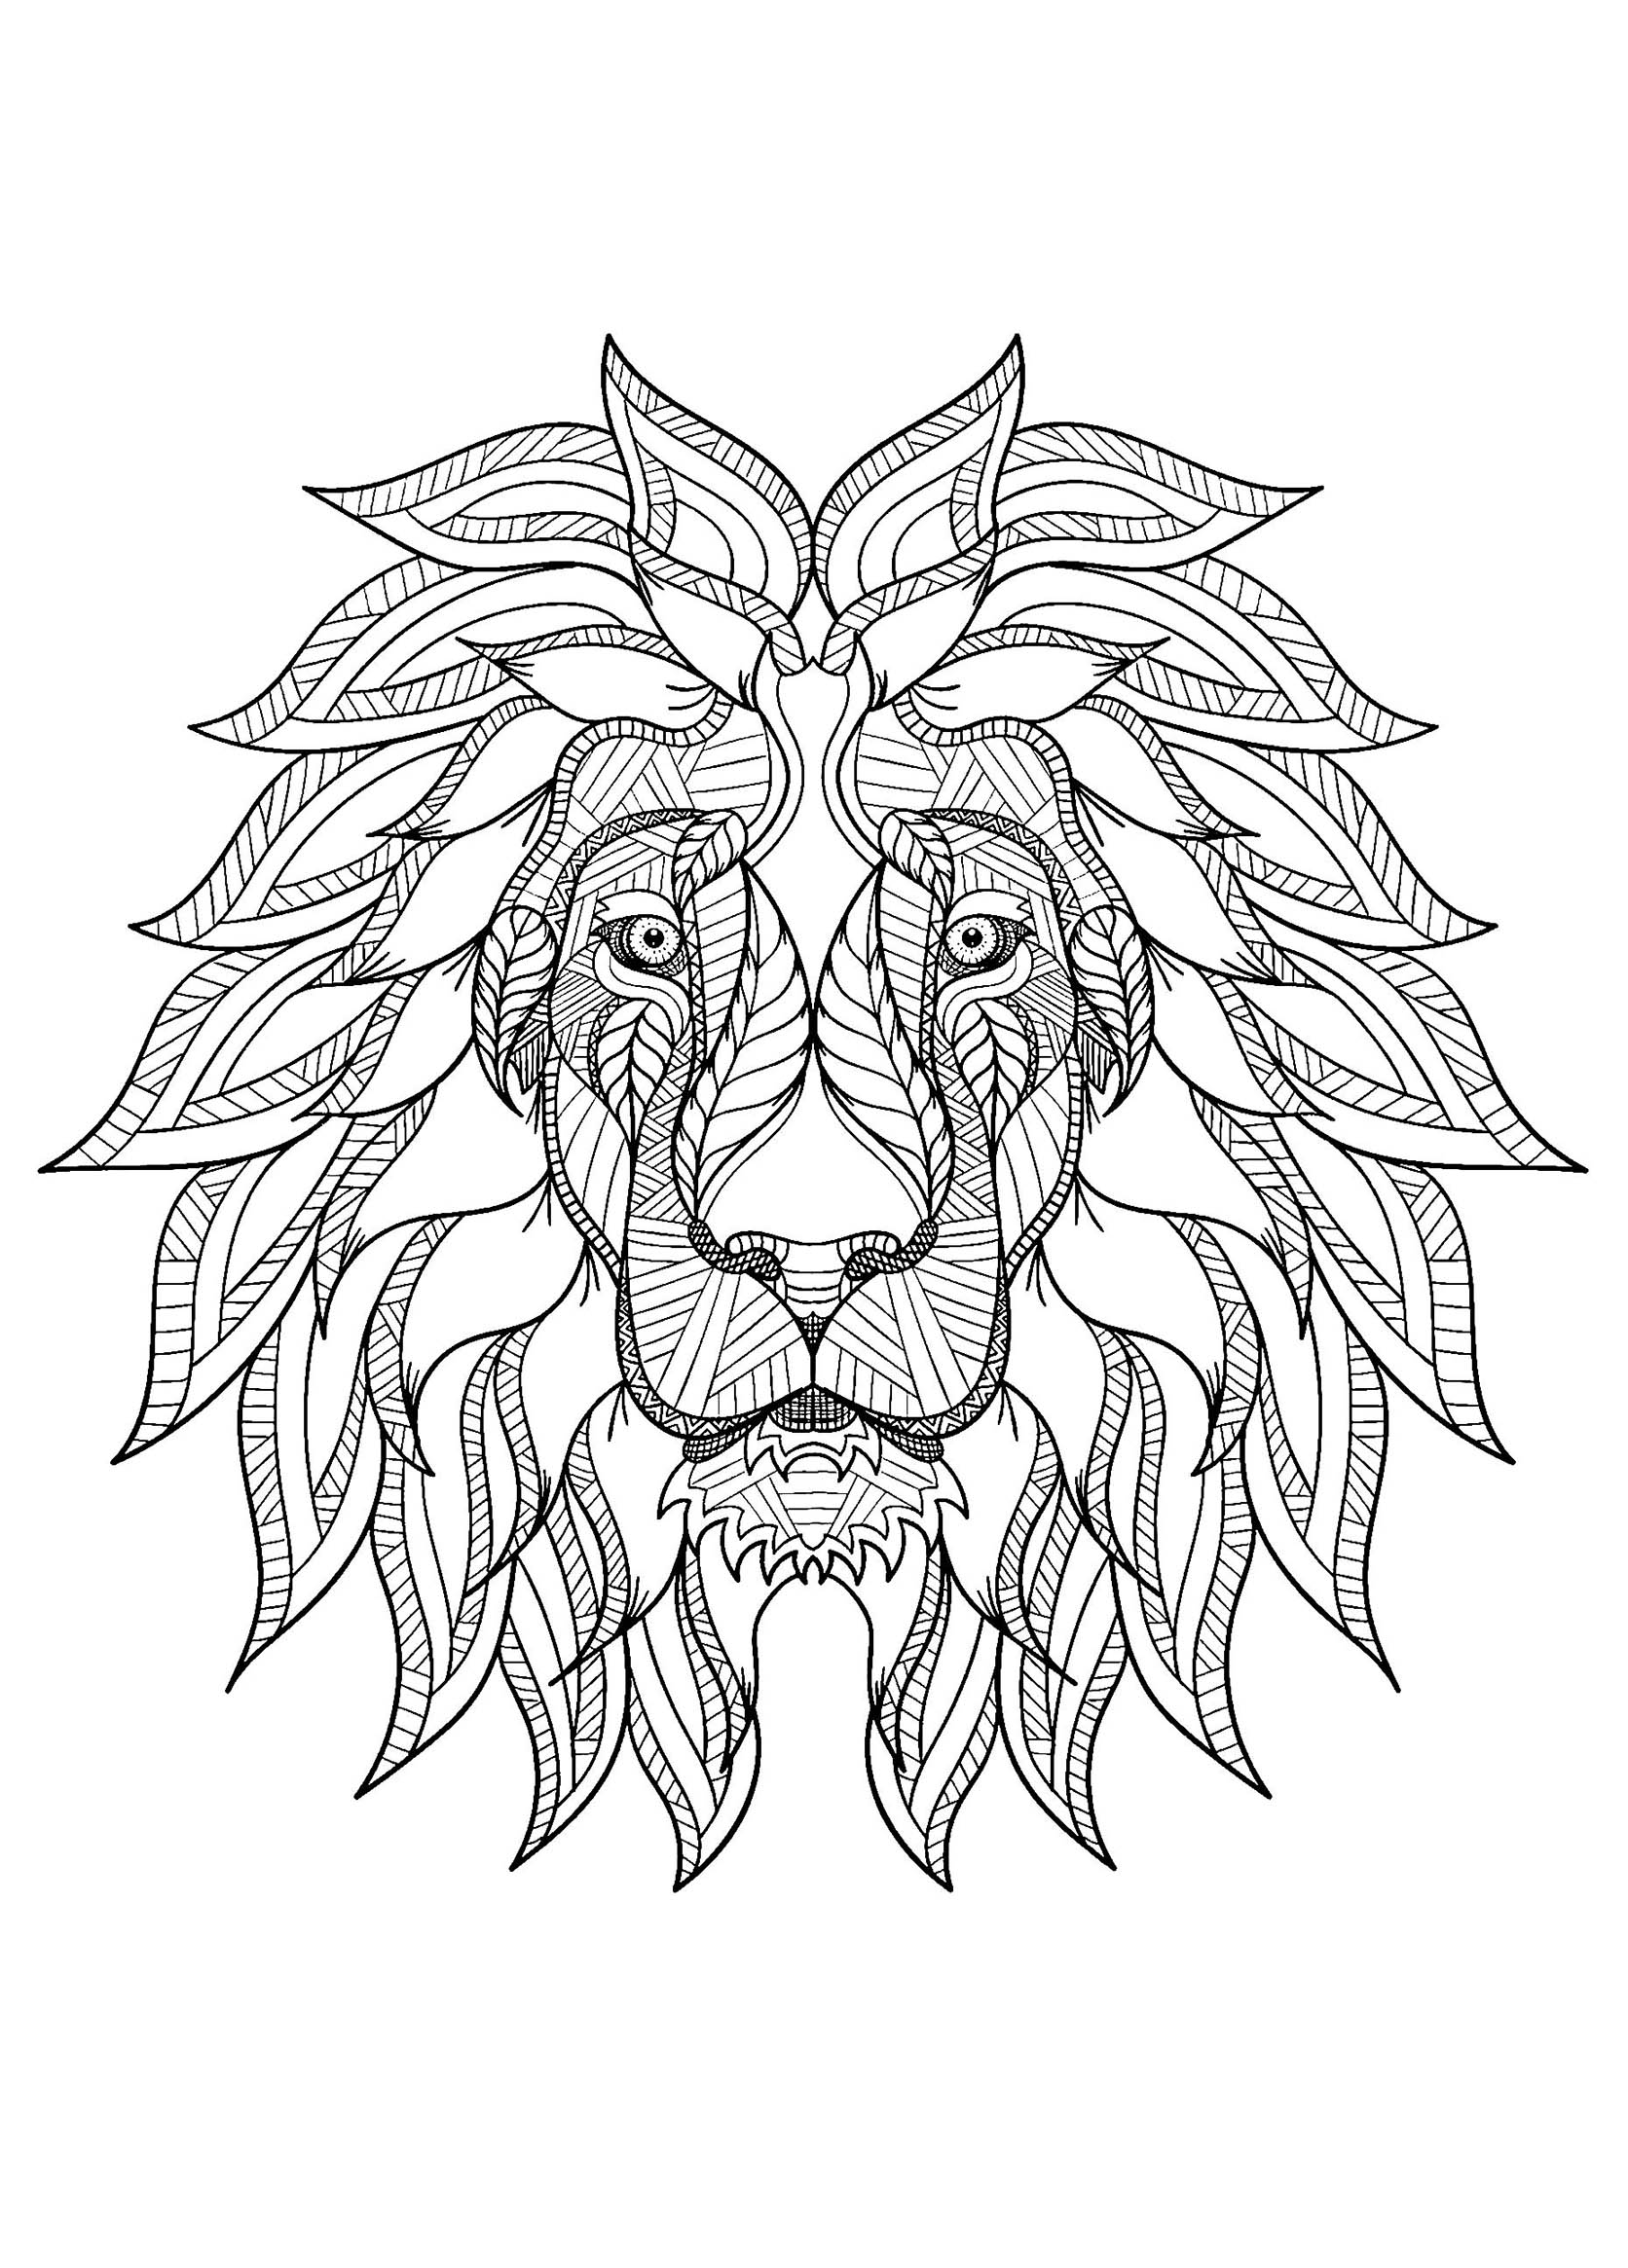 coloring pages for kids lion lion king coloring pages for kids 99coloringcom clip lion for coloring pages kids